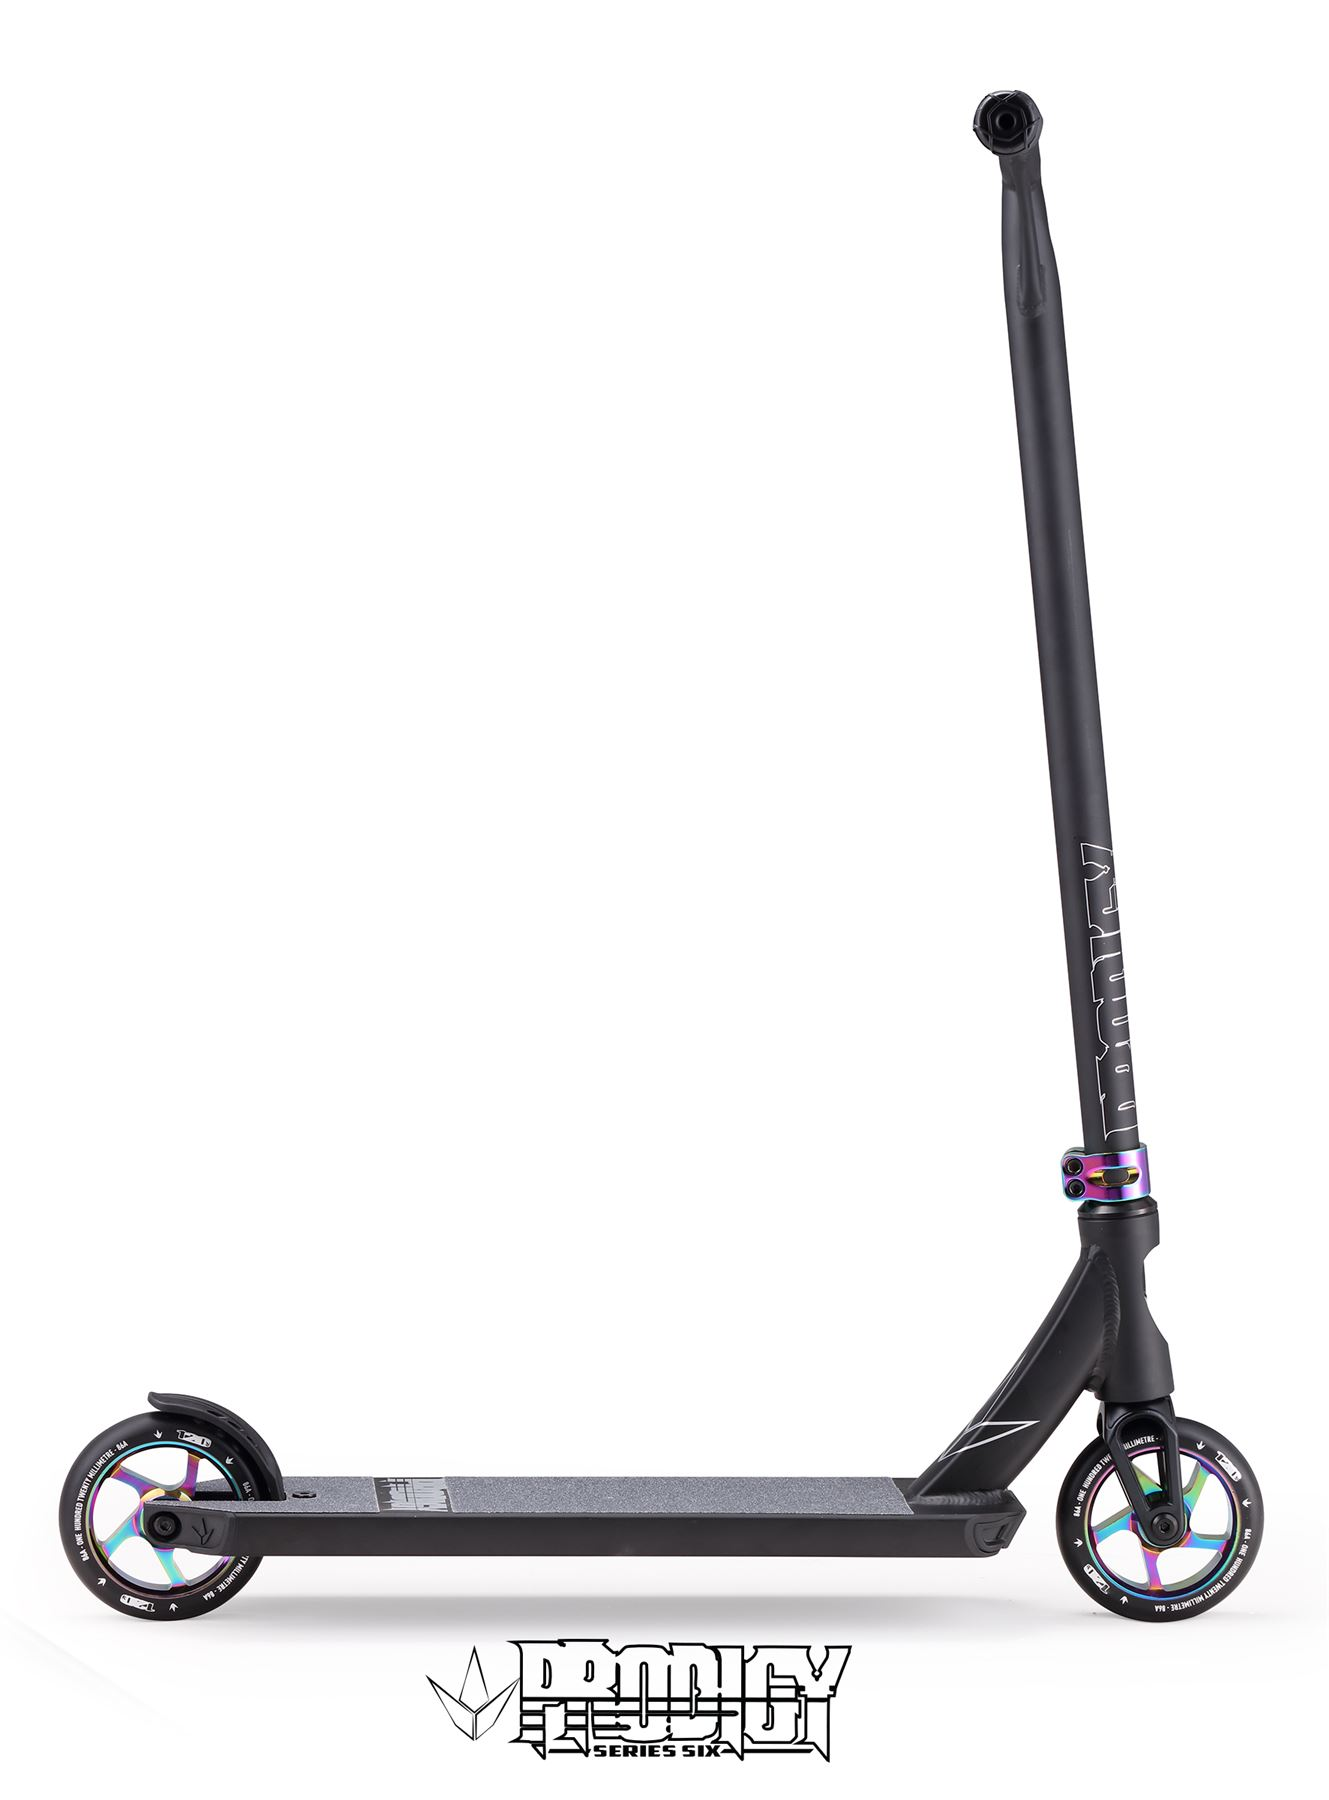 Blunt Envy Prodigy S6 Complete Stunt Scooter